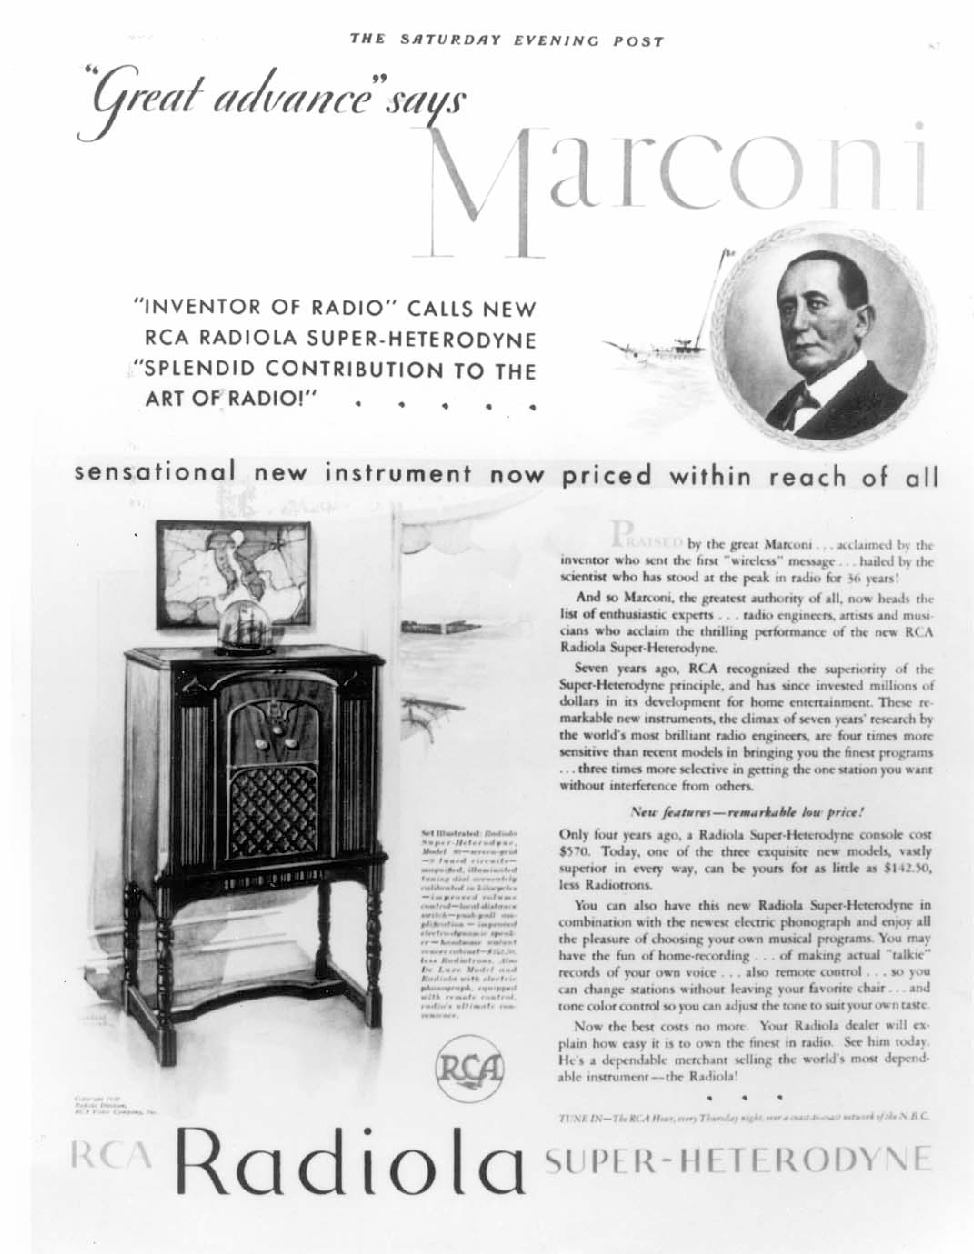 Fig. 4. Advertisement for the Radiola from the Saturday Evening Post, from the mid-1920s. (IEEE History Center, Piscataway, NJ).